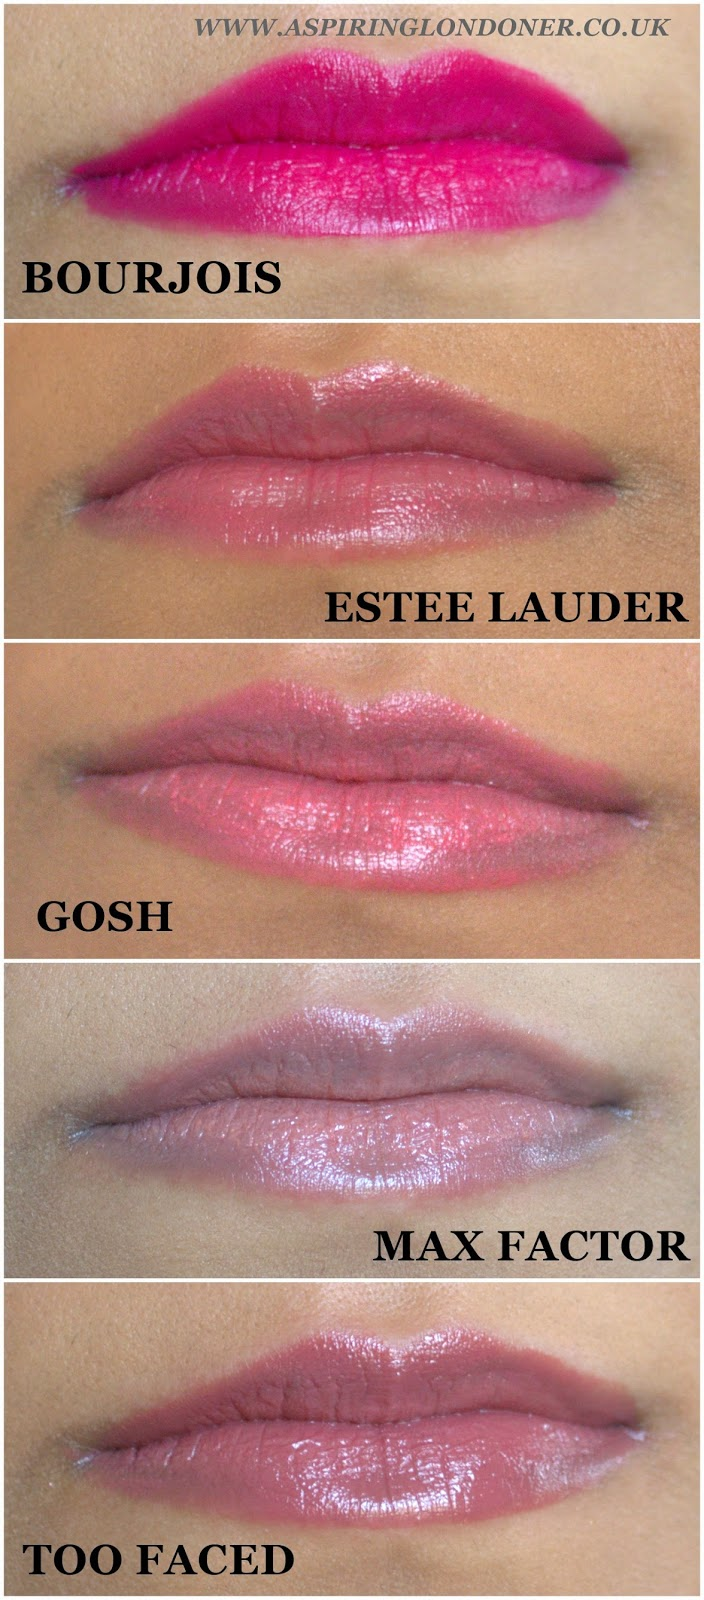 Spring Lipstick Swatches ft Bourjois, Too Faced, GOSH, Estee Lauder, Max Factor - Aspiring Londoner